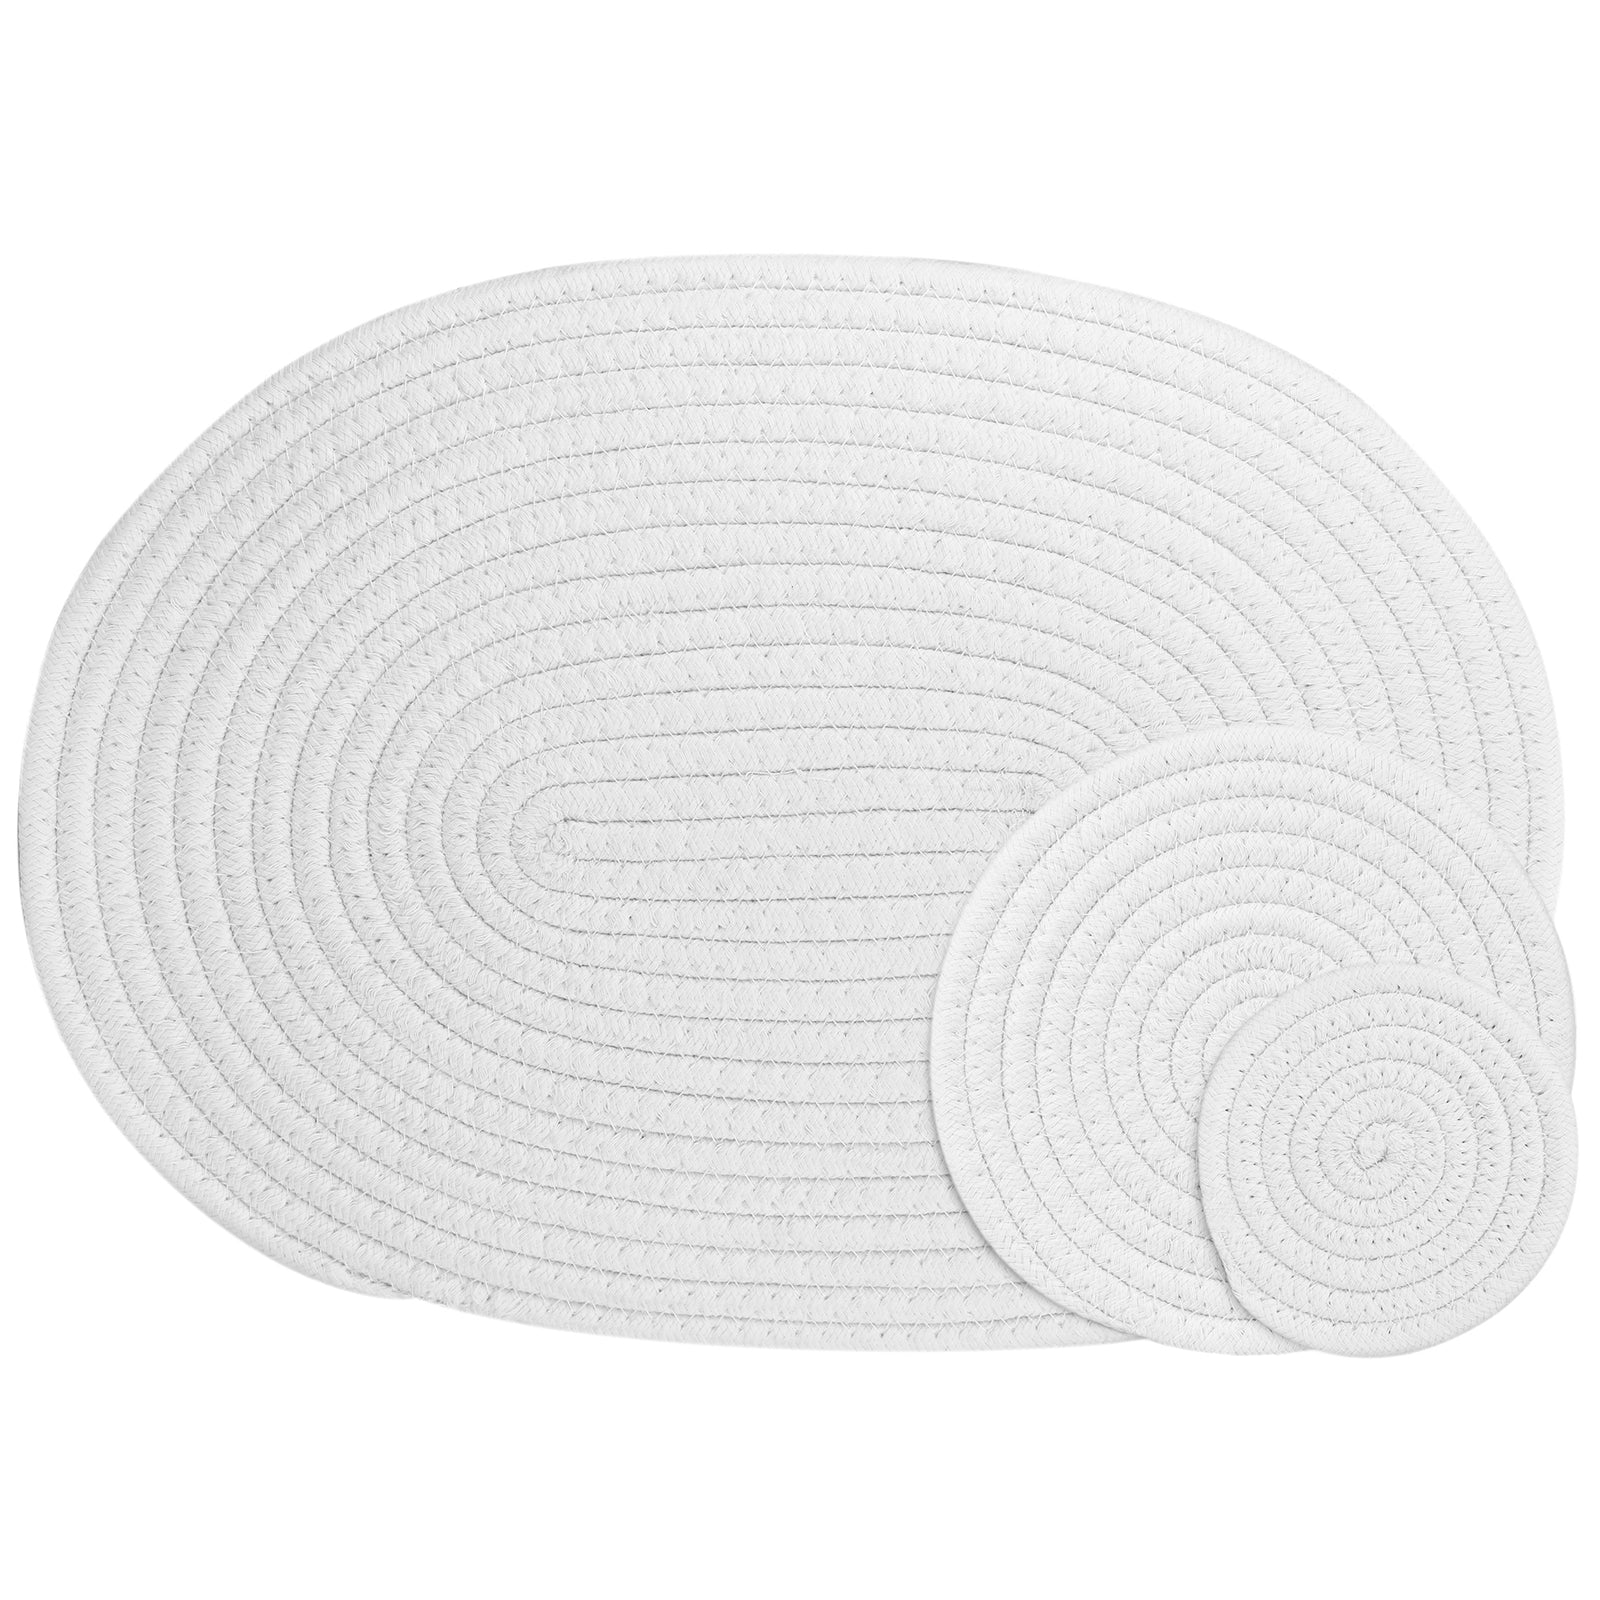 White Woven Cotton Placemat and Coaster Set